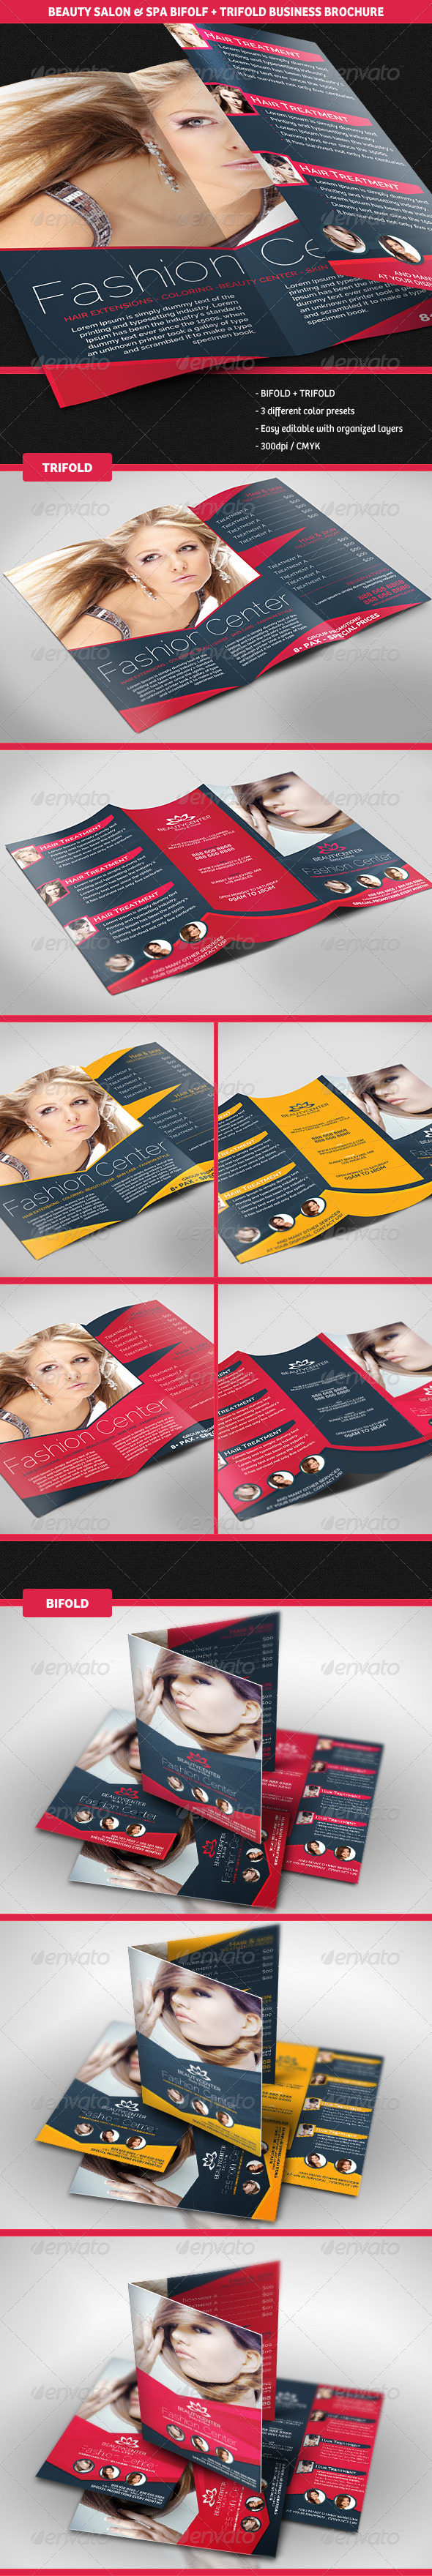 GraphicRiver Beauty Center Bifold & Trifold Business Brochures 5296210